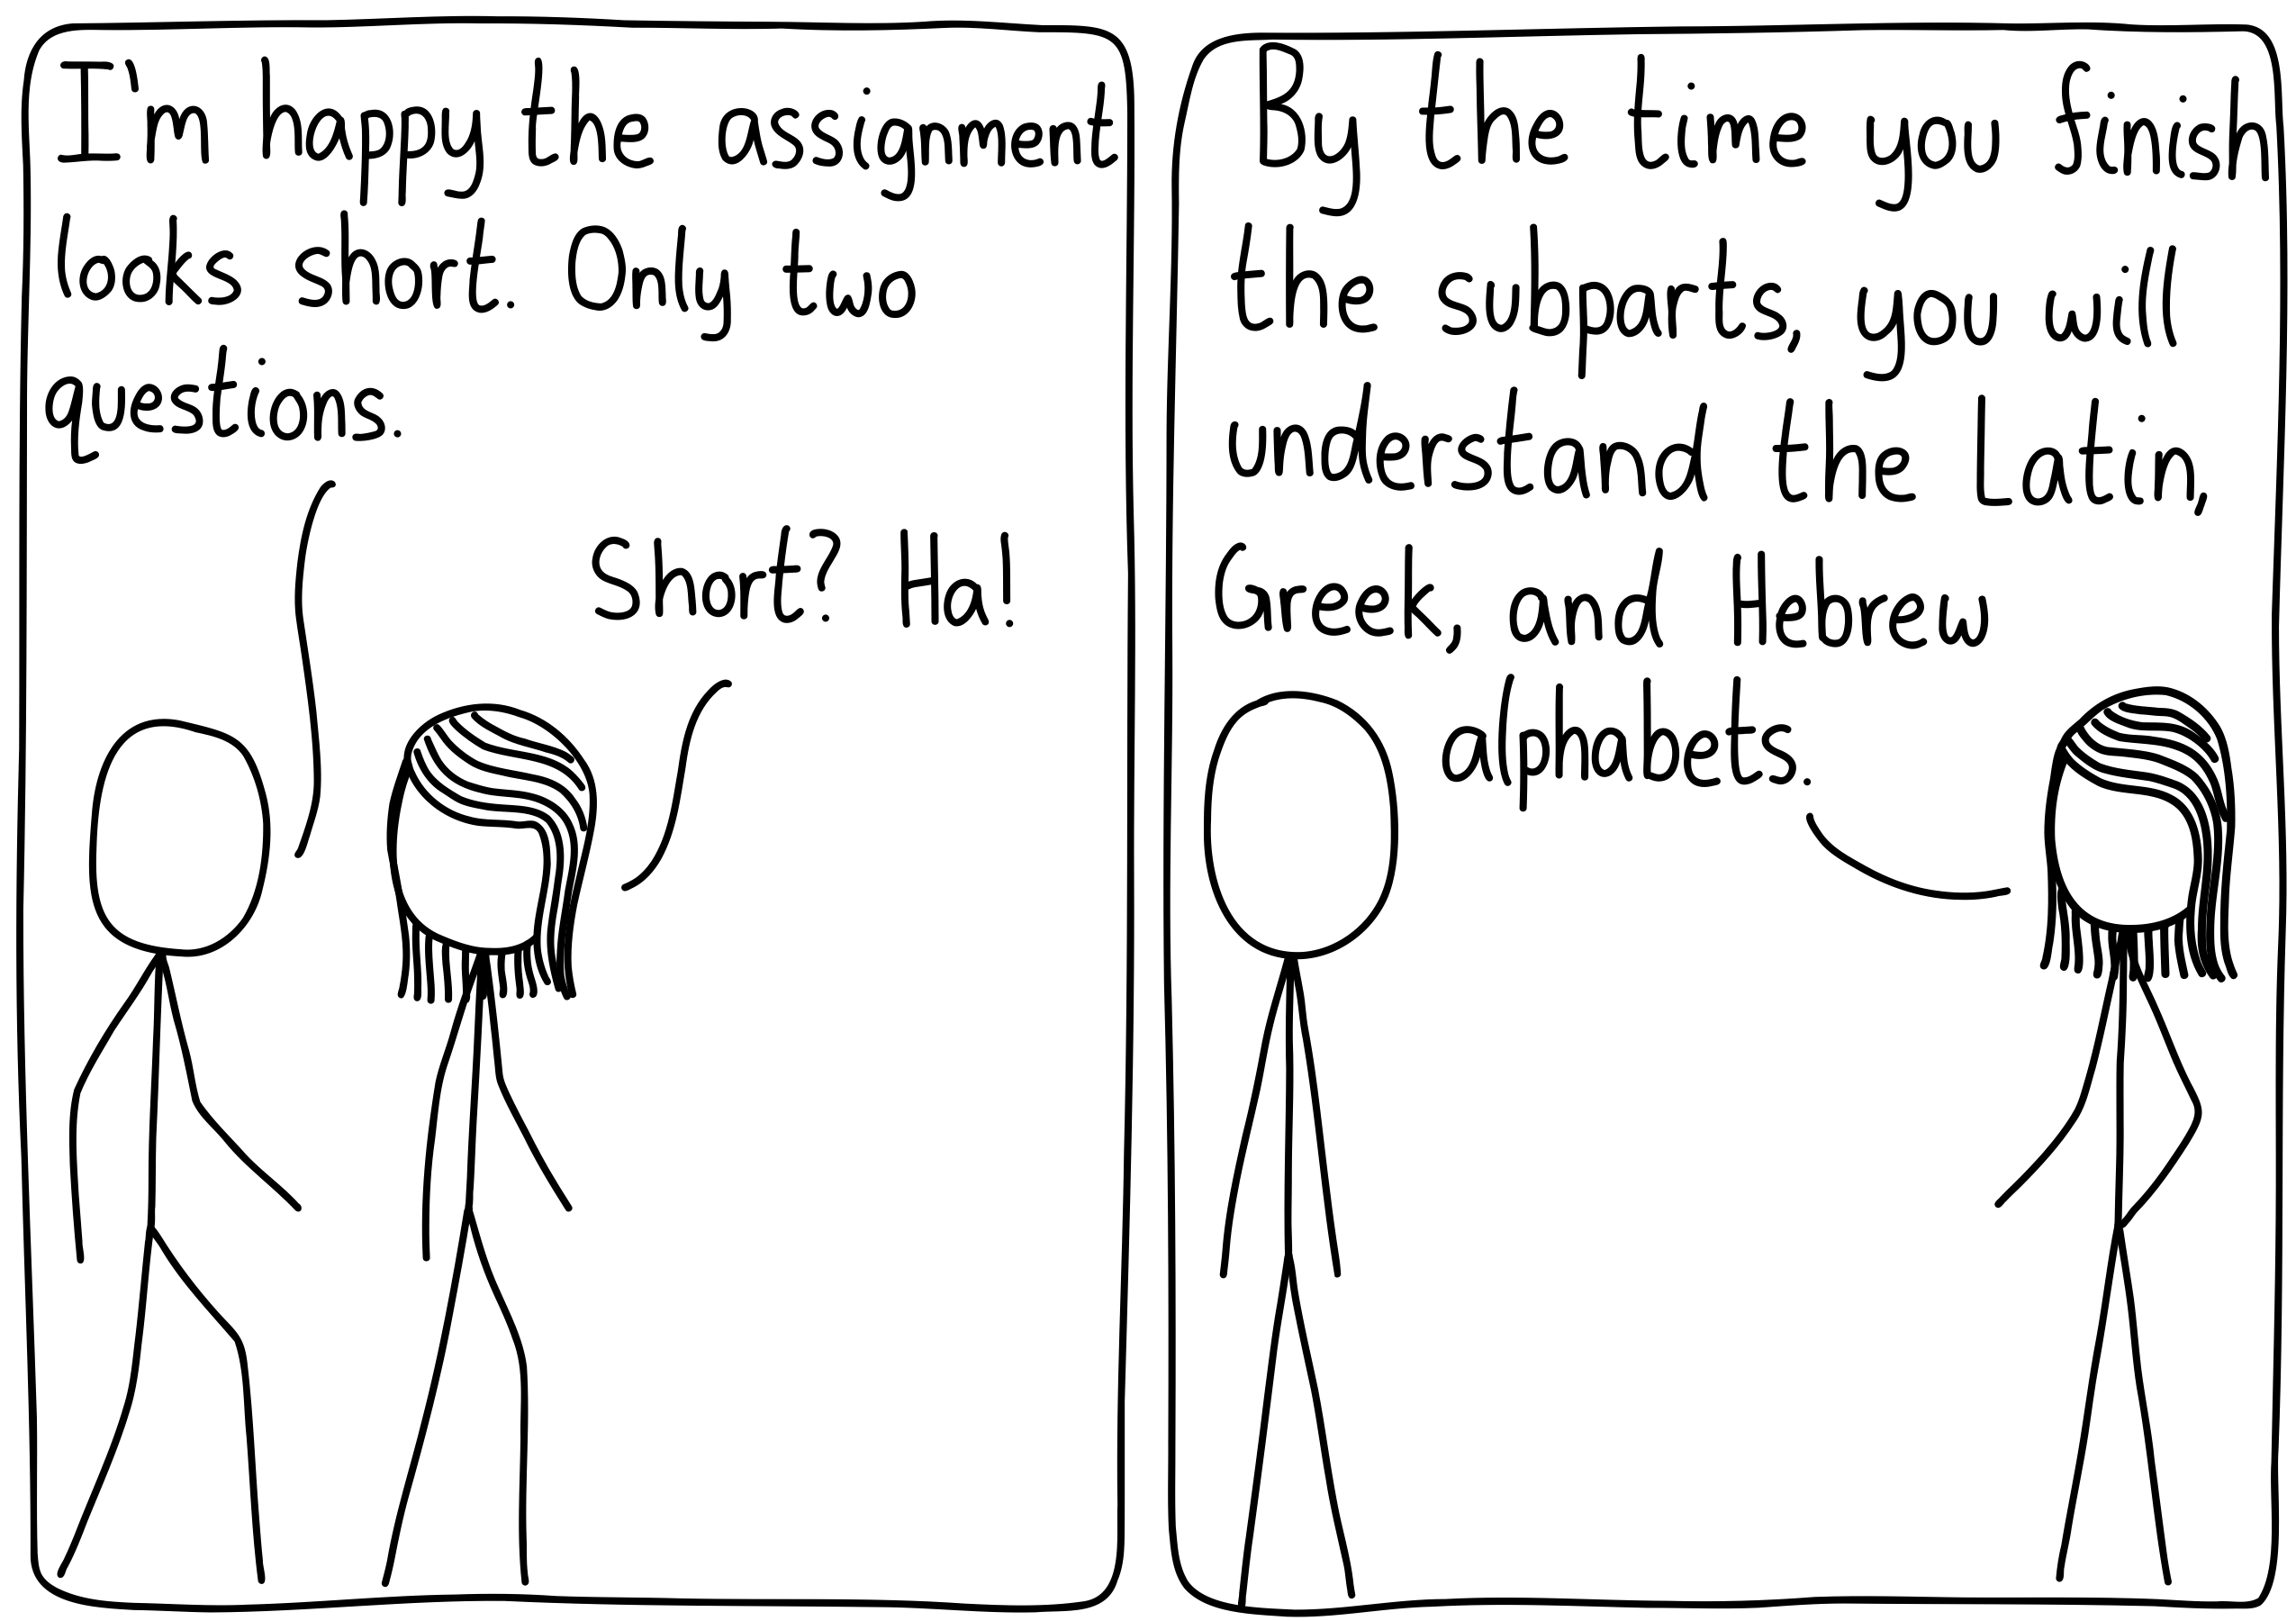 """Left panel (A girl and a boy talking about their assignments): The boy: """"I'm happy the assignment looks short. Only two questions."""" The girl: """"Short? Ha!"""" Right panel: The girl: """"By the time you finish the subparts, you will understand the Latin, Greek, and Hebrew alphabets."""""""